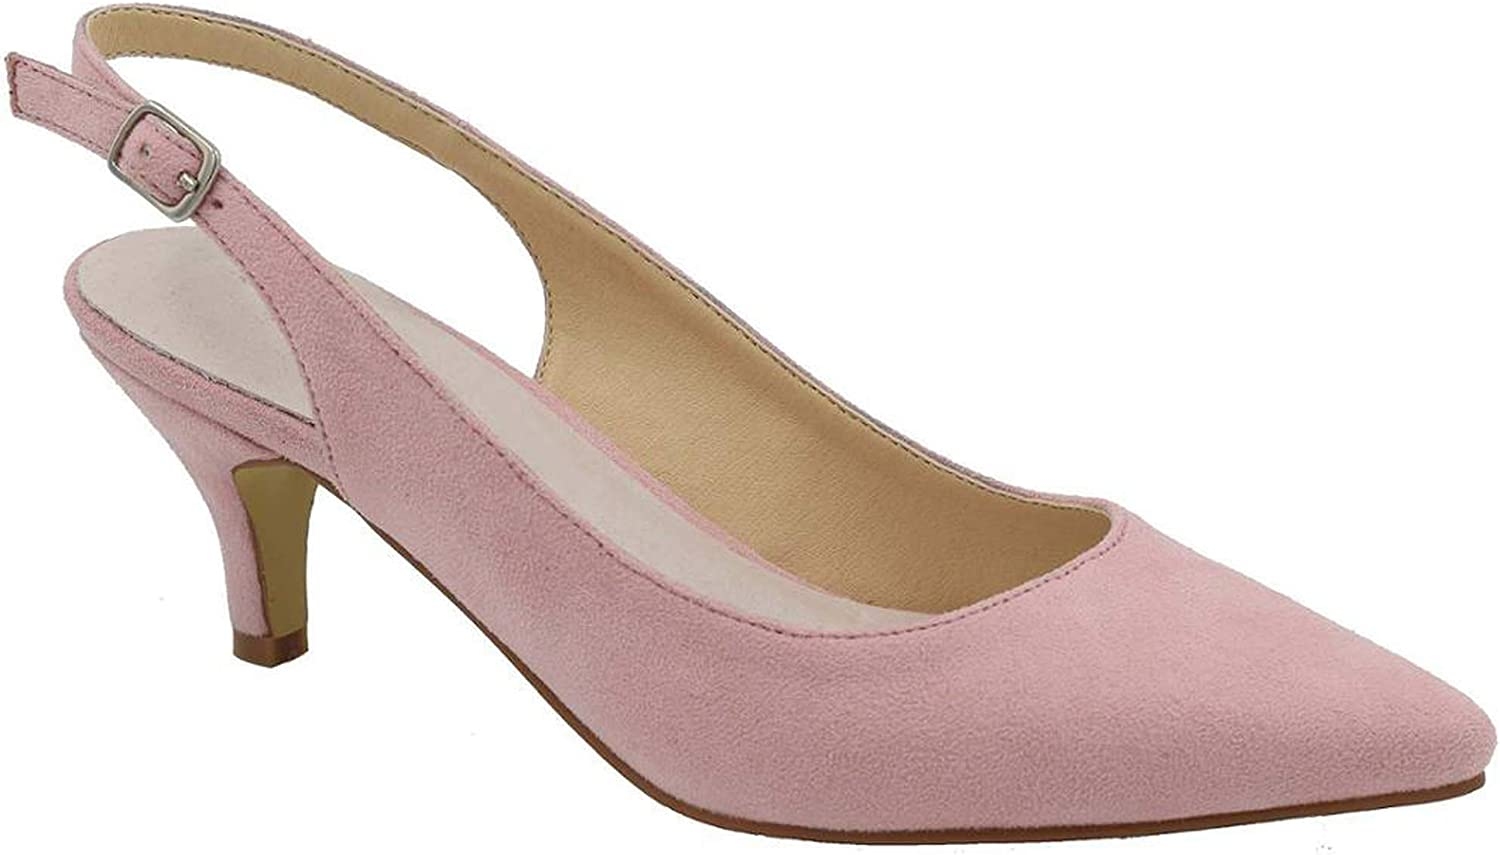 Dendrobium Women High Heels Pointed Toe Classic Slingback Pumps Sexy Ladies Dress Court Formal shoes,Pink,7